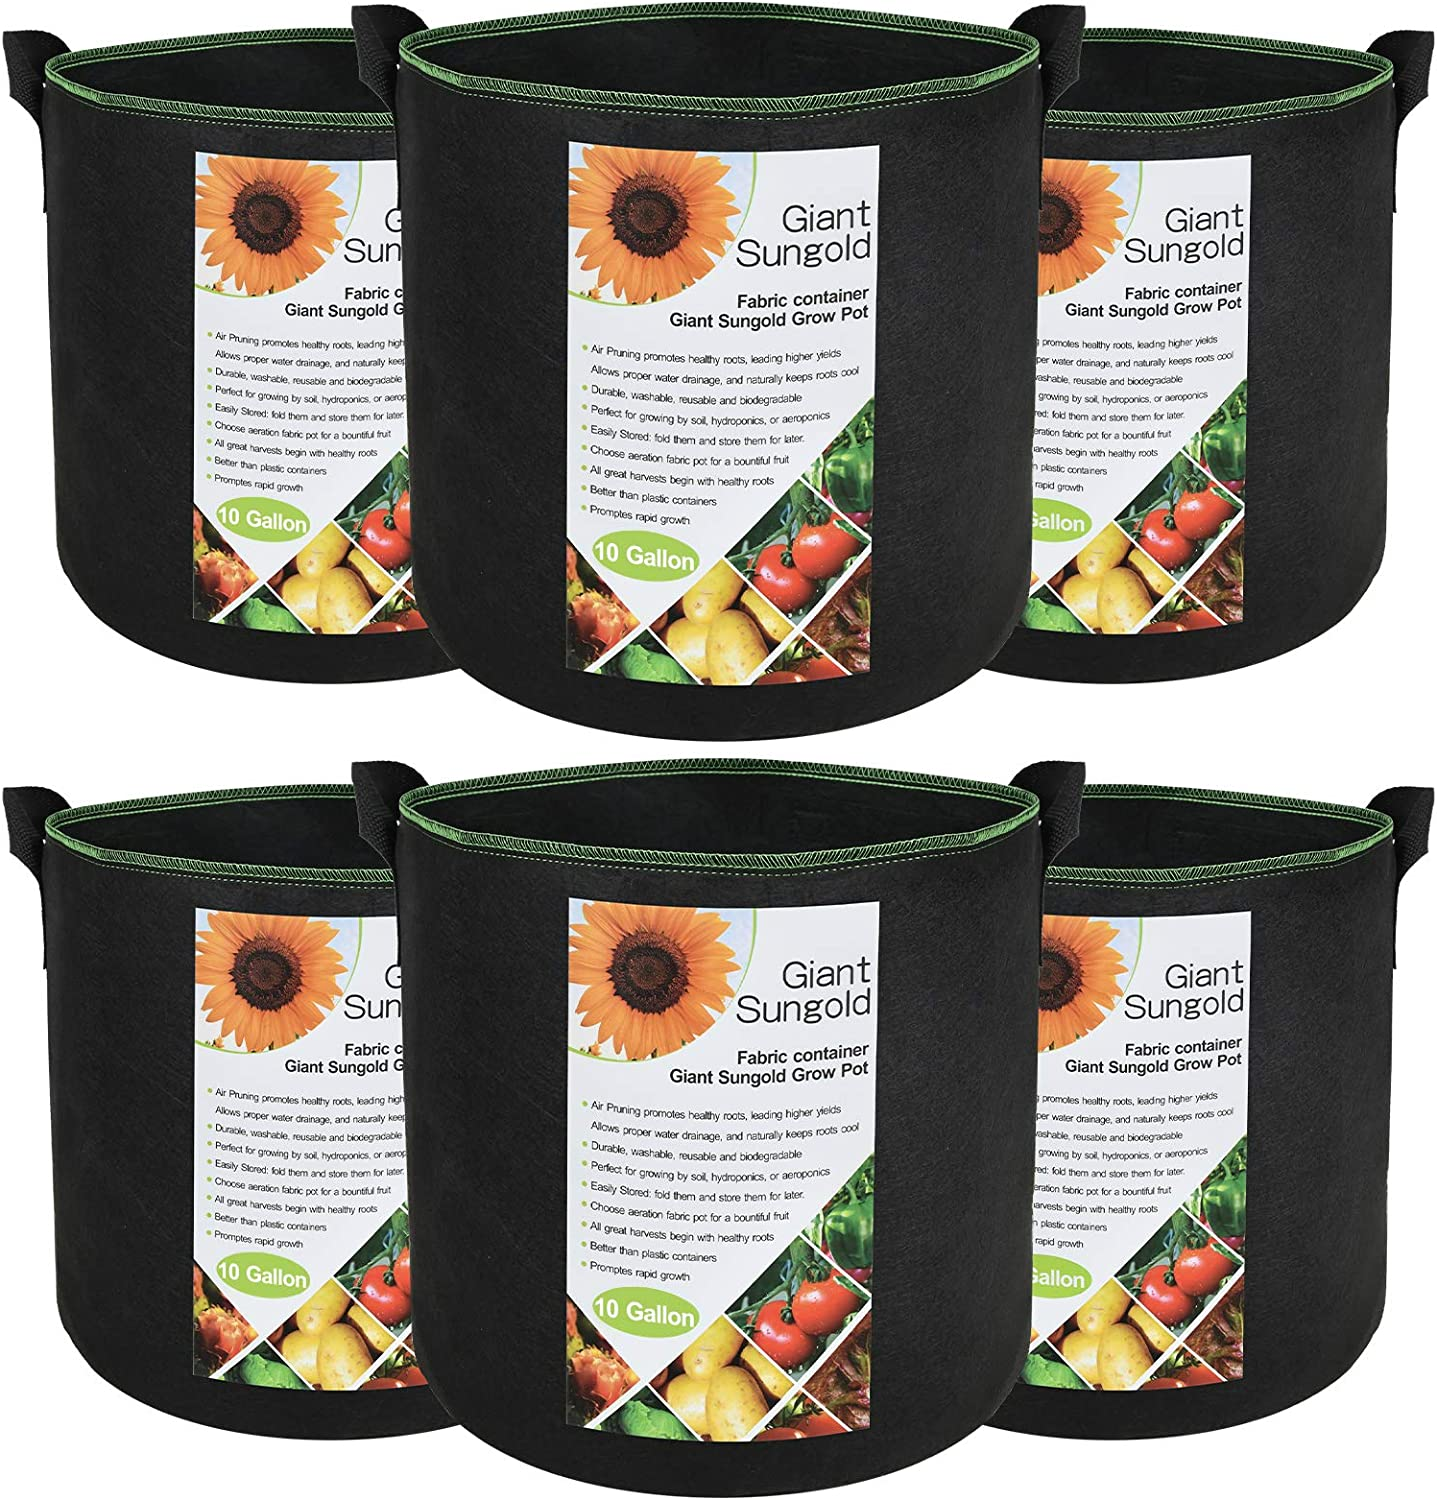 6-Pack 10 Gallon Grow Bags, Giant Sungold Thickened Non-Woven Fabric Pots with Handles, Heavy Duty Aeration Grow Bag Planters Vegetables, Flowers, Garden Planters Nursery Planters